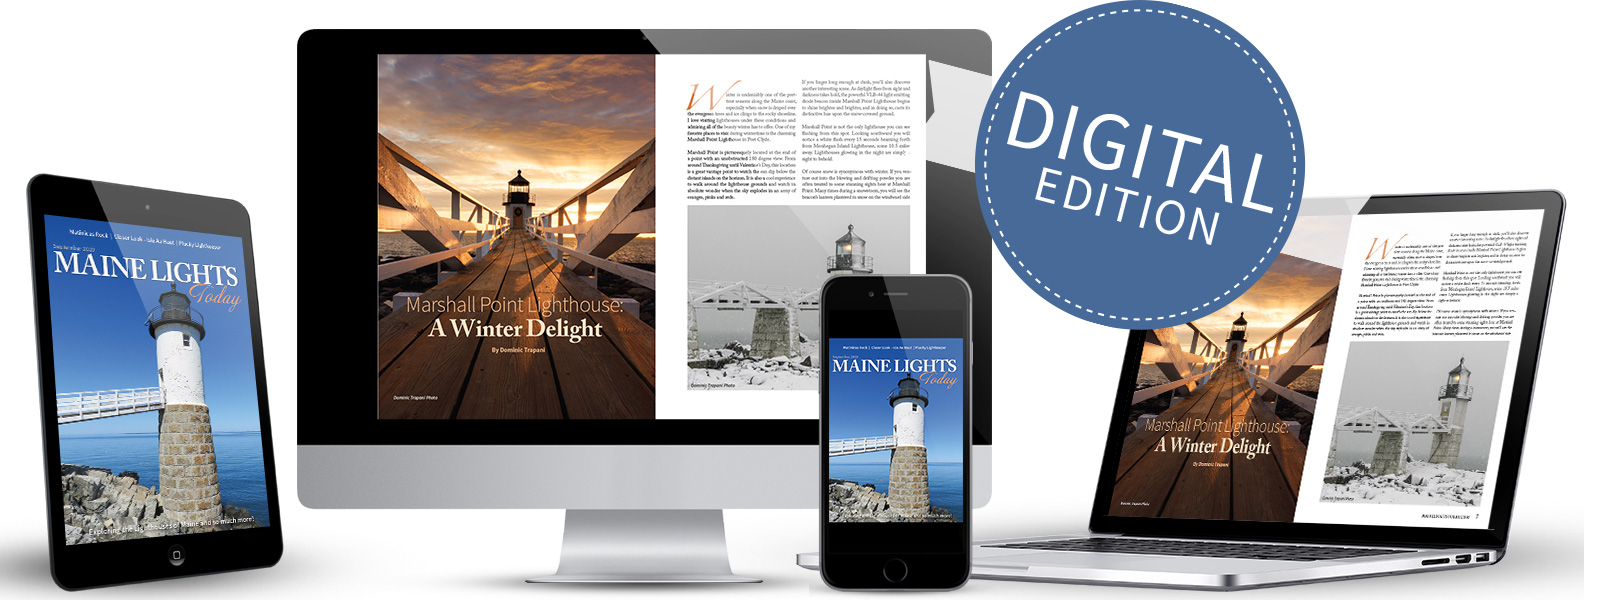 Maine Lights Today Digital Editions